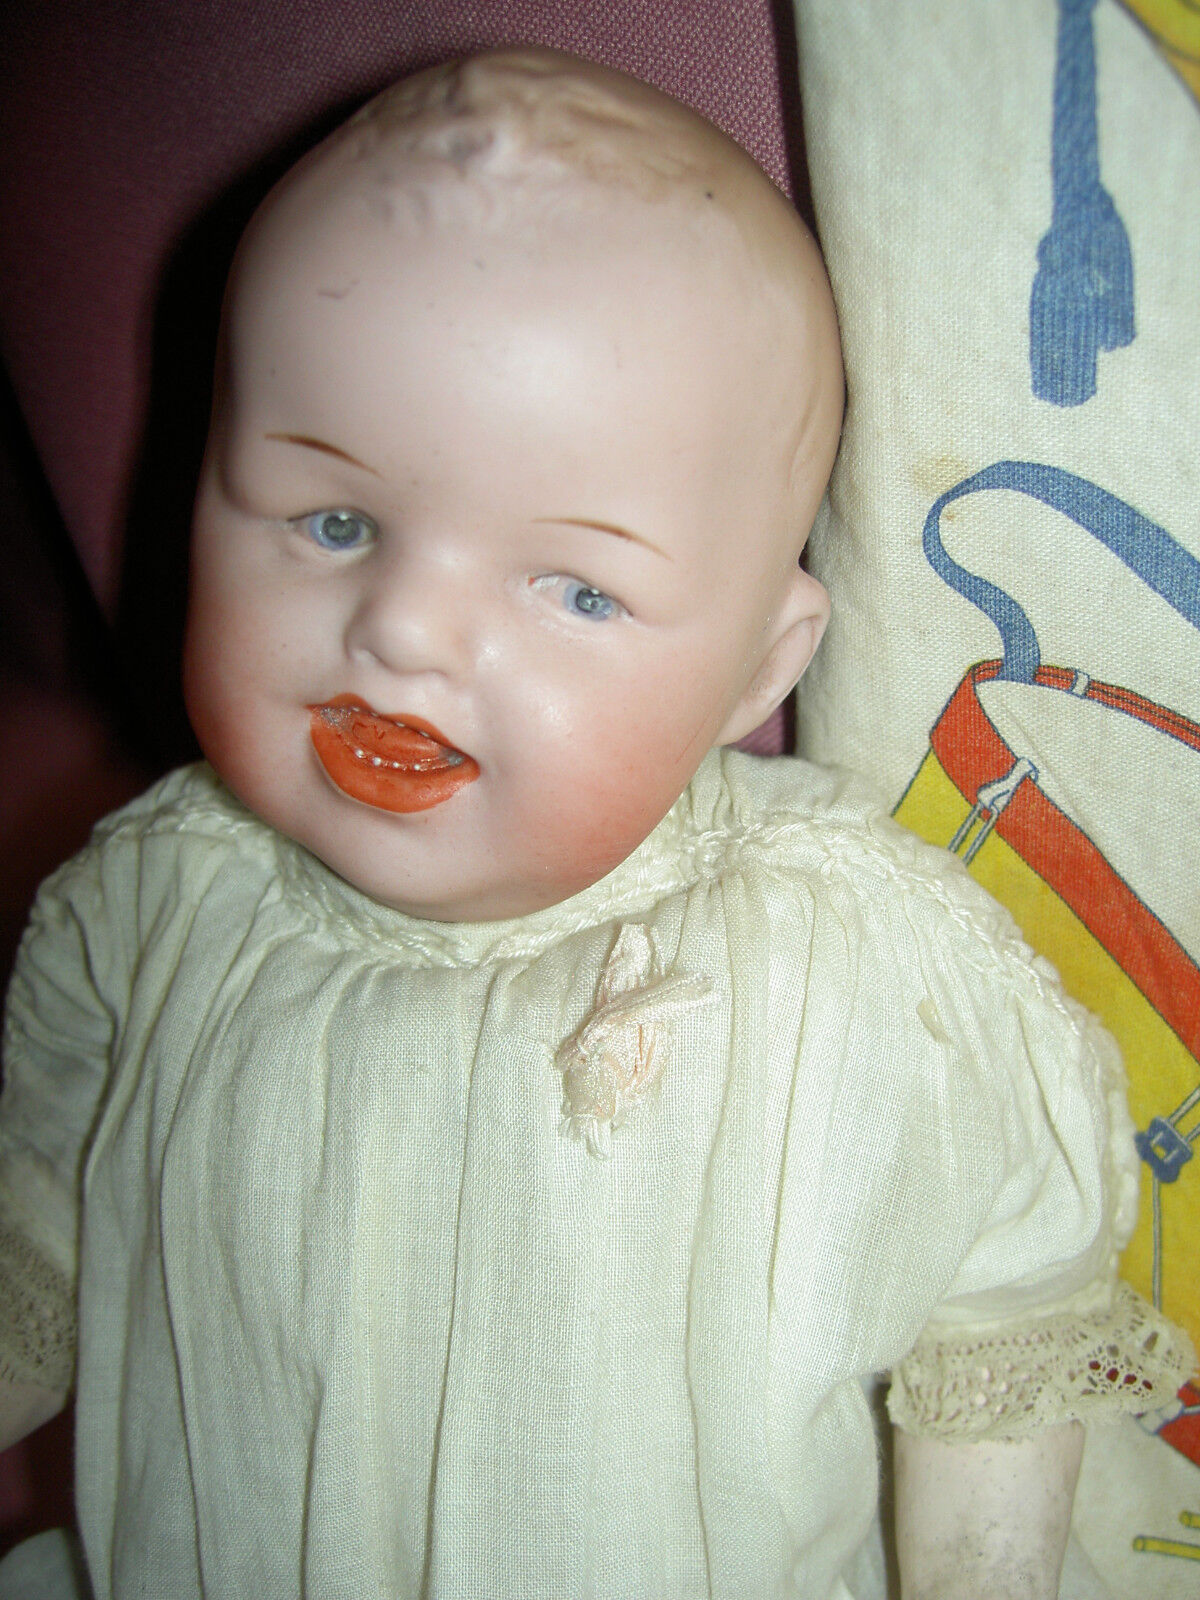 Antique German Gebruder Heubach 8191 bisque head laughing, character baby doll